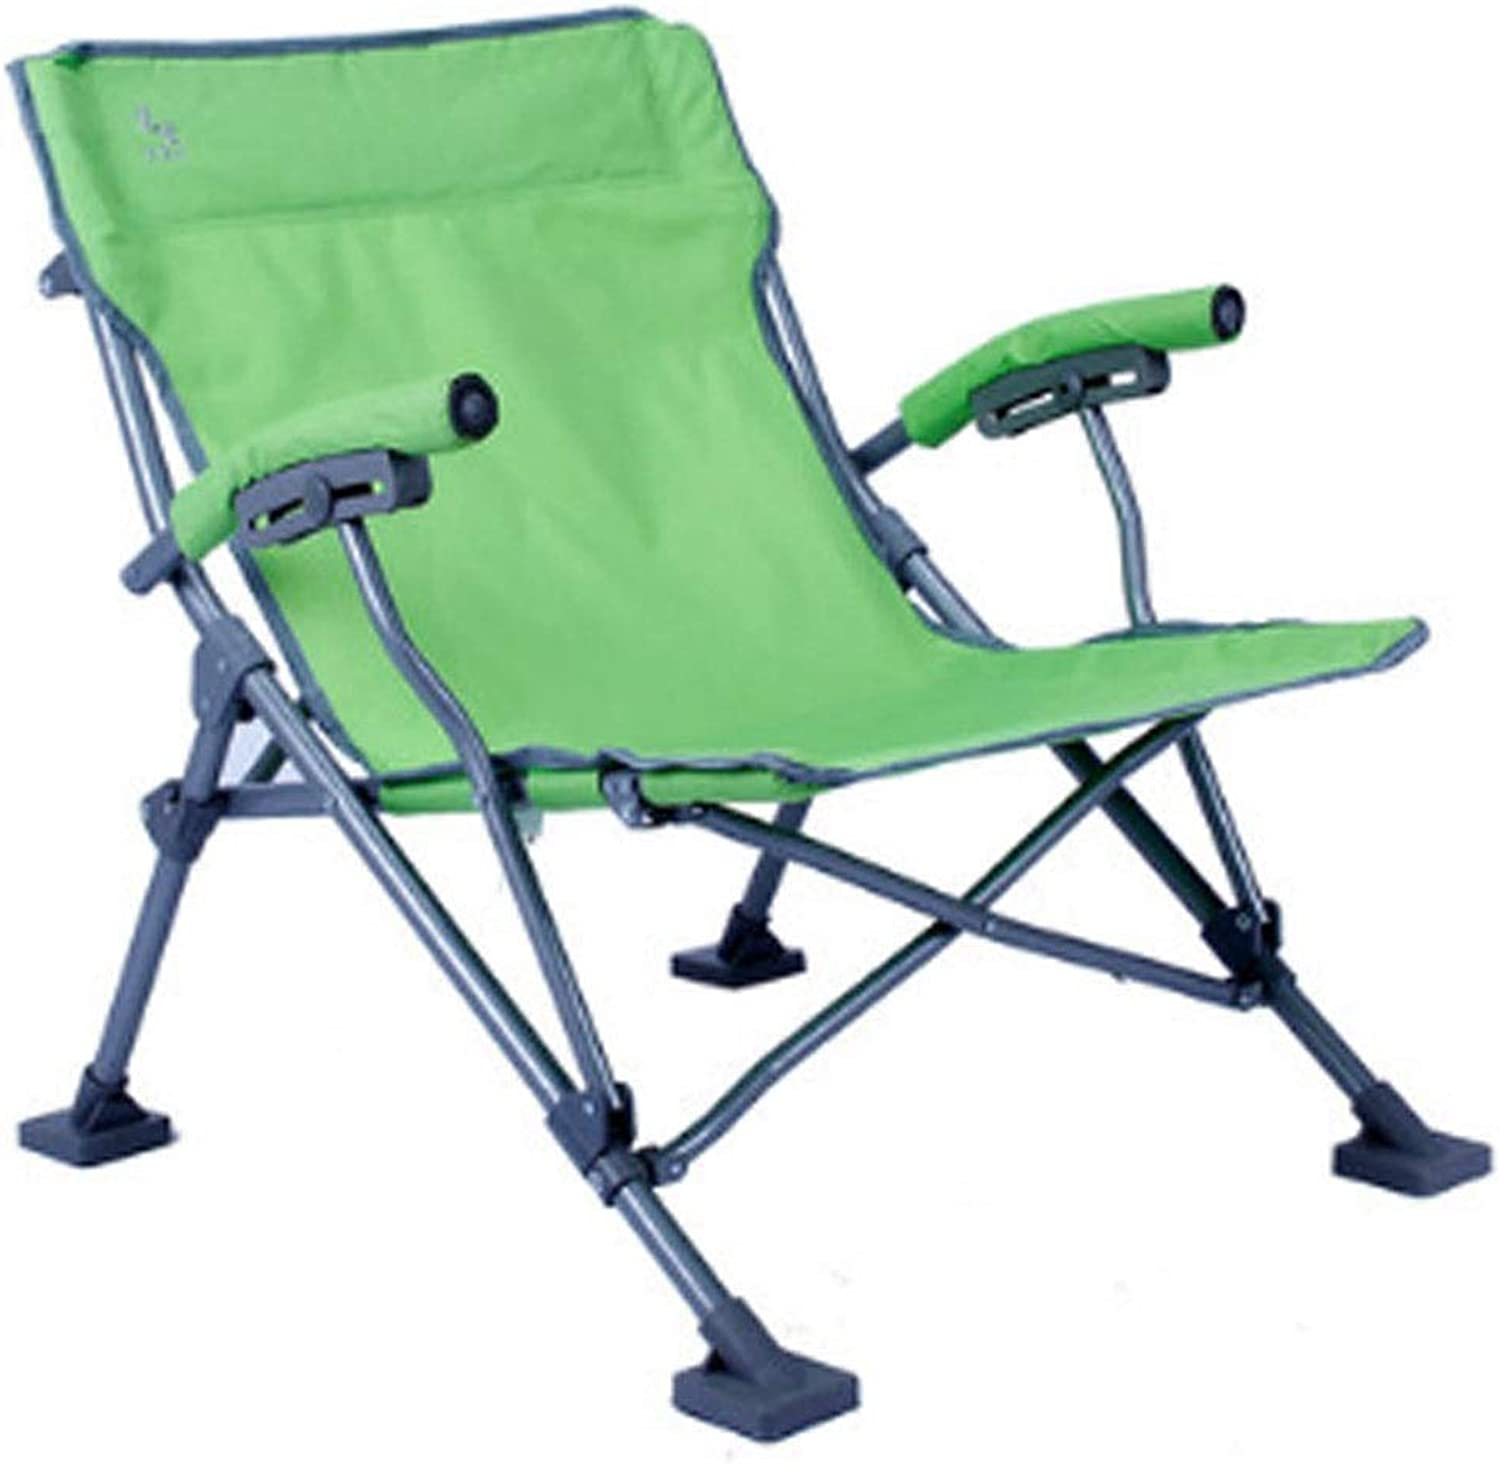 Folding Recliner American Indoor Folding Chair Outdoor Folding Recliner Portable Leisure Chair Beach Sun Folding Chair Outdoor Camping Recliner (color   Green, Size   69X55CM)